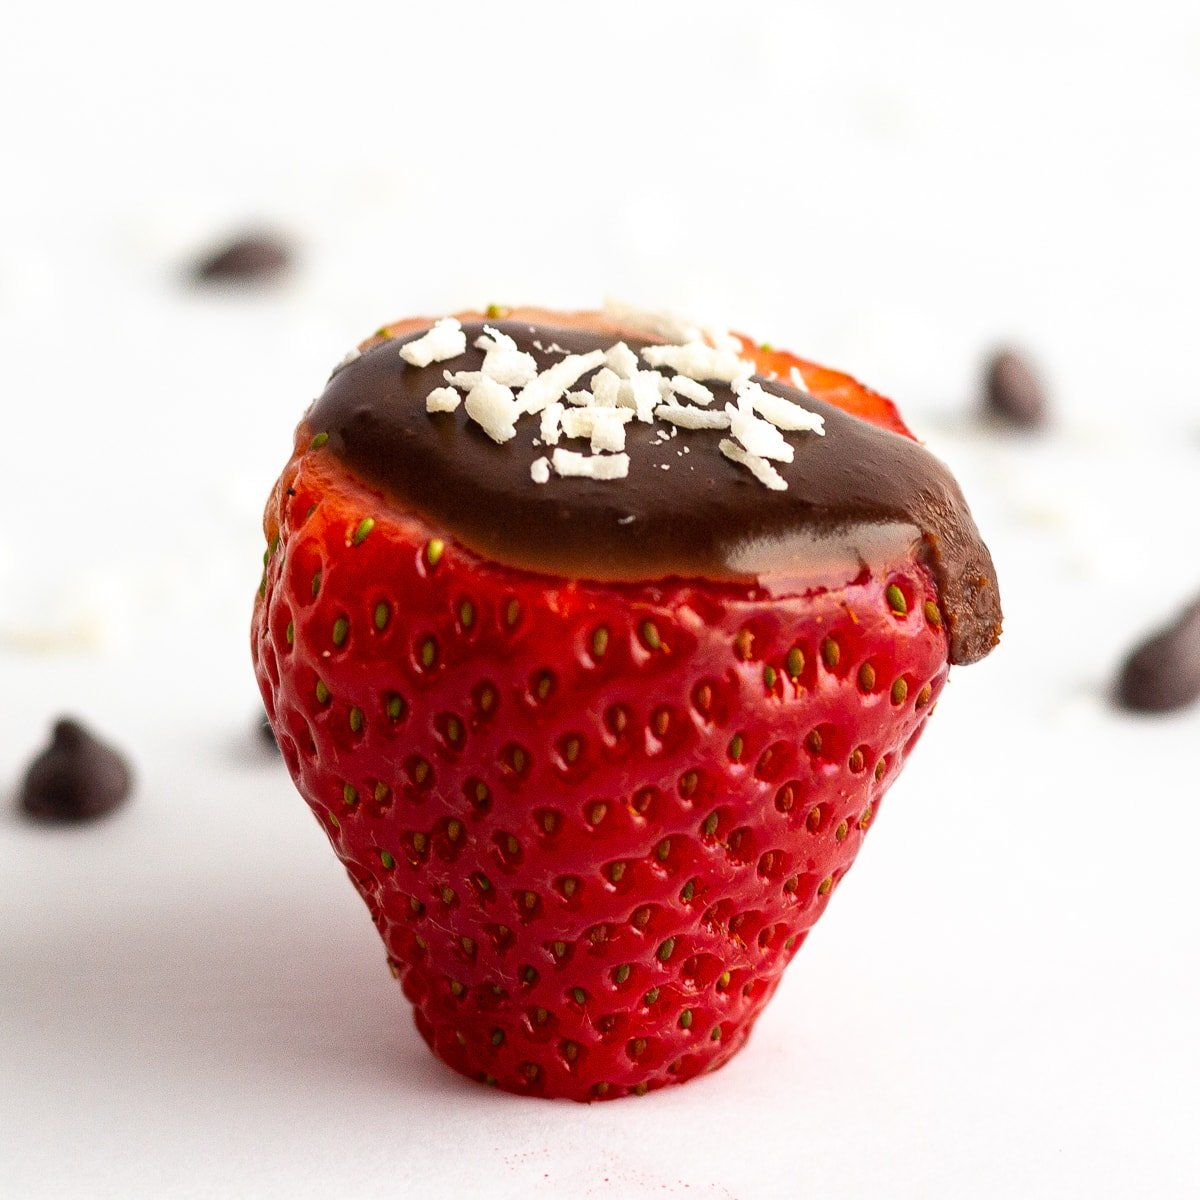 Single strawberry filled with chocolate coconut cream and a few flakes of shredded coconut scattered on the top.